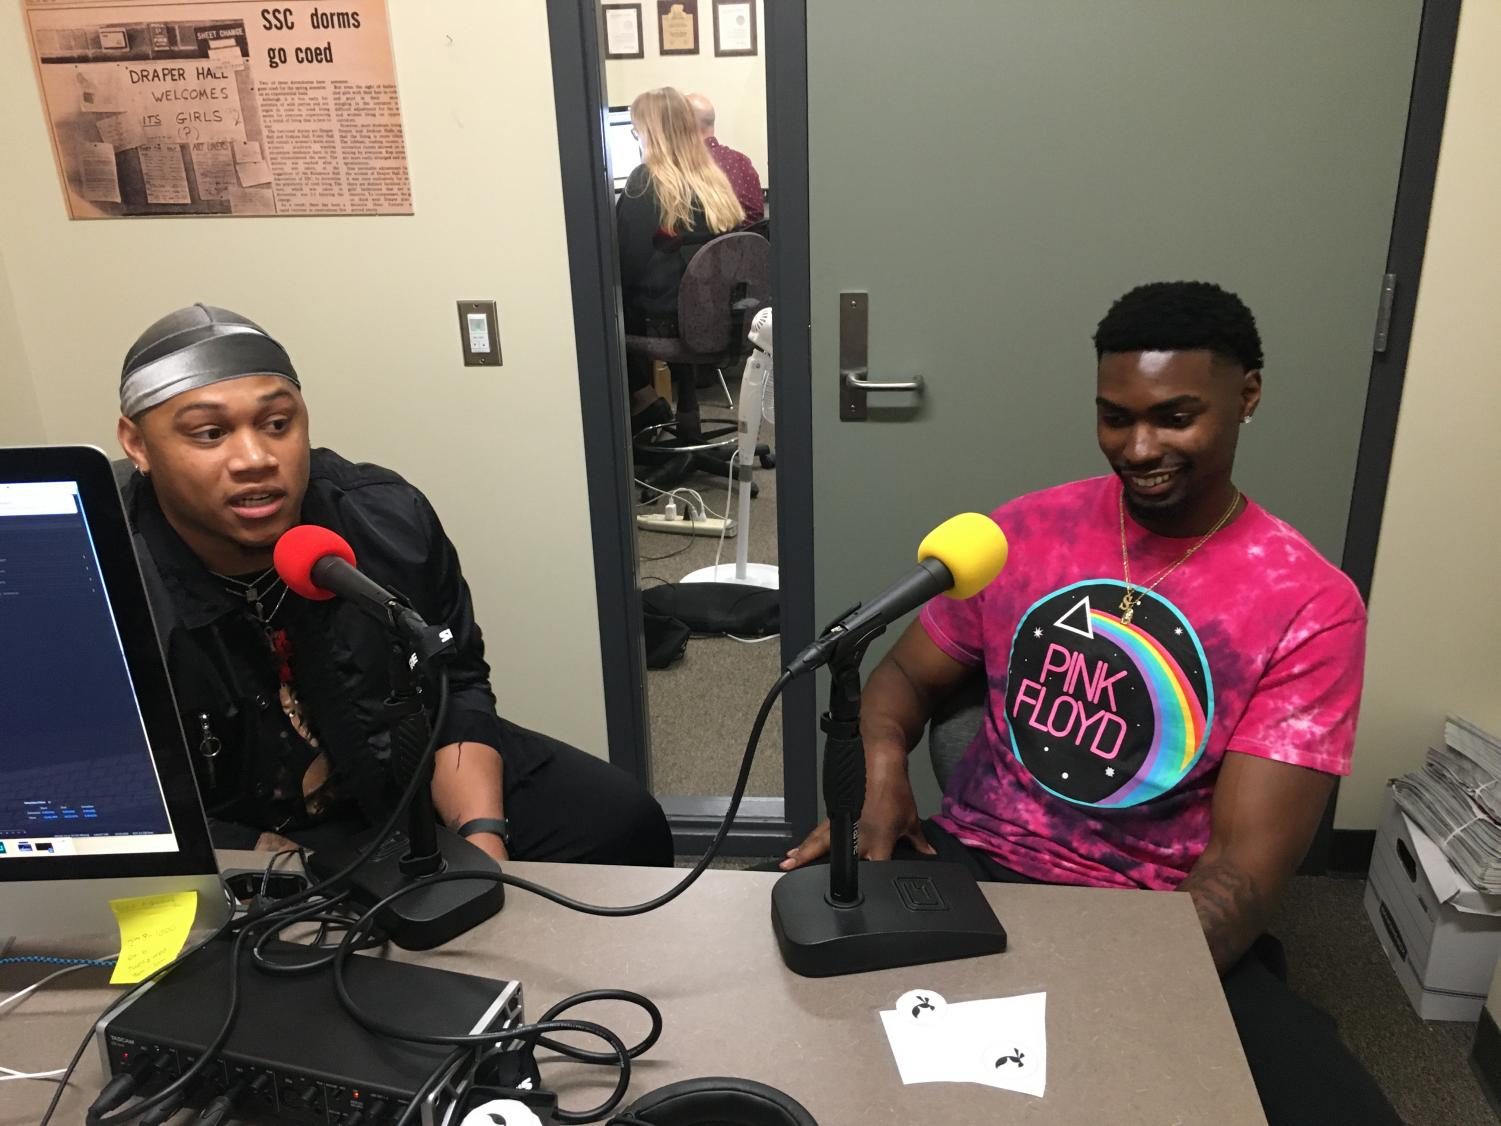 Sac State alumni and former football players Dre Terrell and Andre Lindsey in the studio for the State Hornet Sports Podcast. Lindsey and Terrell reflected on their favorite memories at Sac State and their former team's recent rise in the Big Sky Conference.